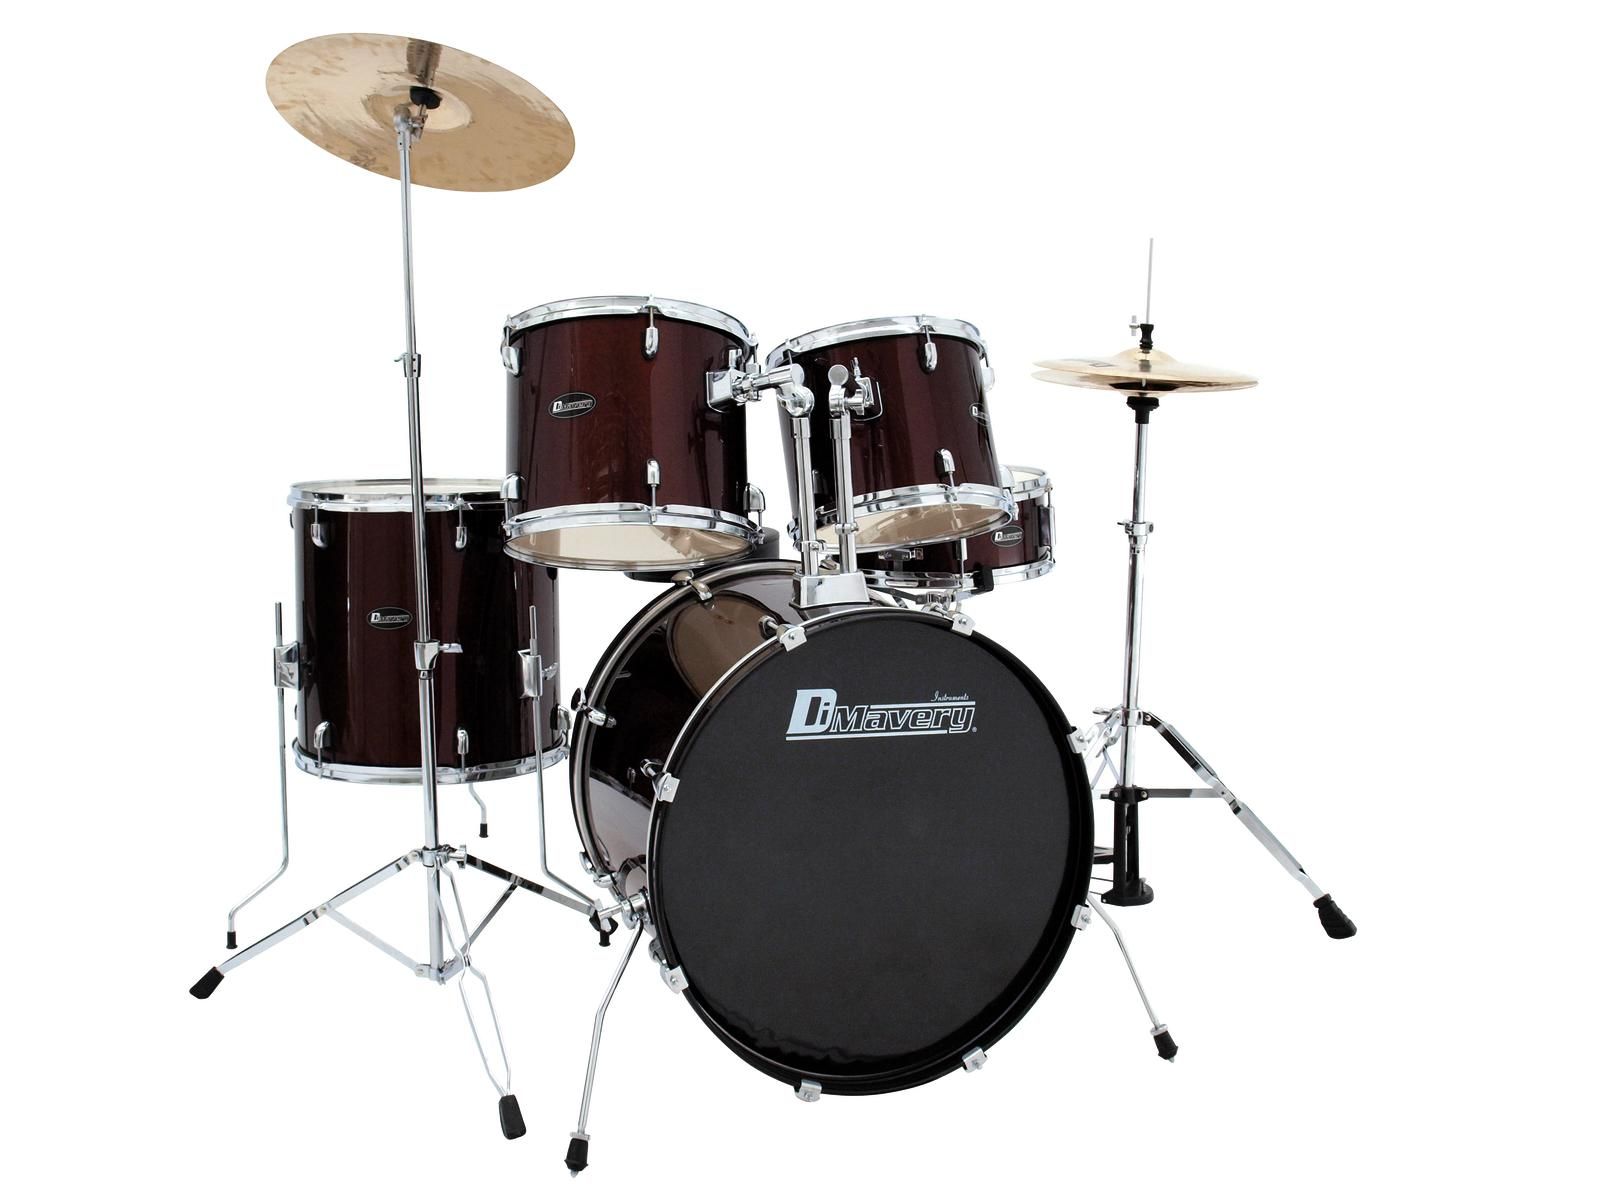 DIMAVERY DS-205 Drum set, rosso